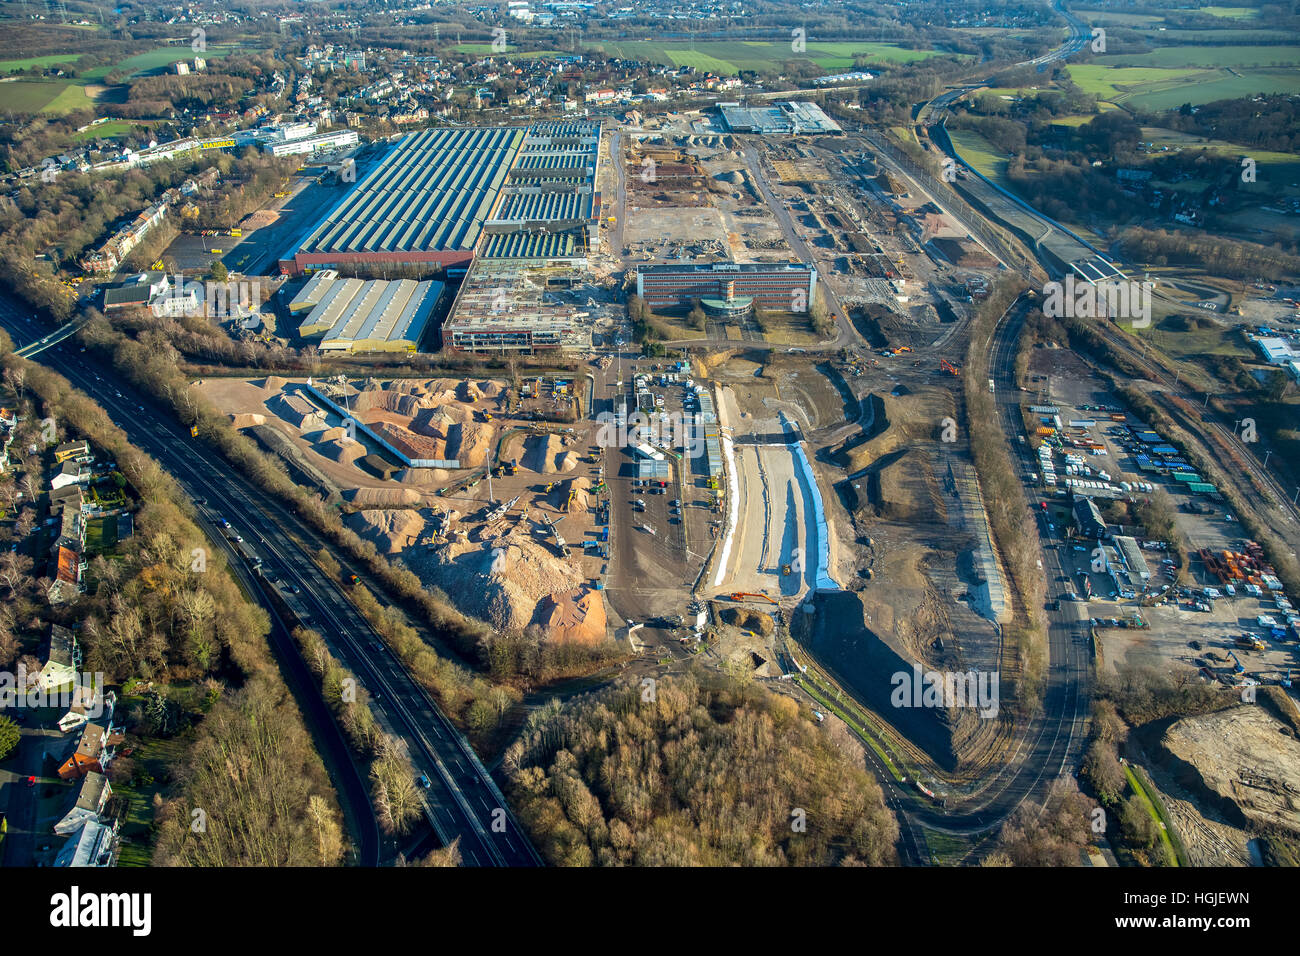 Aerial view, OPEL plant 1 Bochum, demolition of January 2017 Bochum, Ruhr area, North Rhine-Westphalia, Germany, - Stock Image